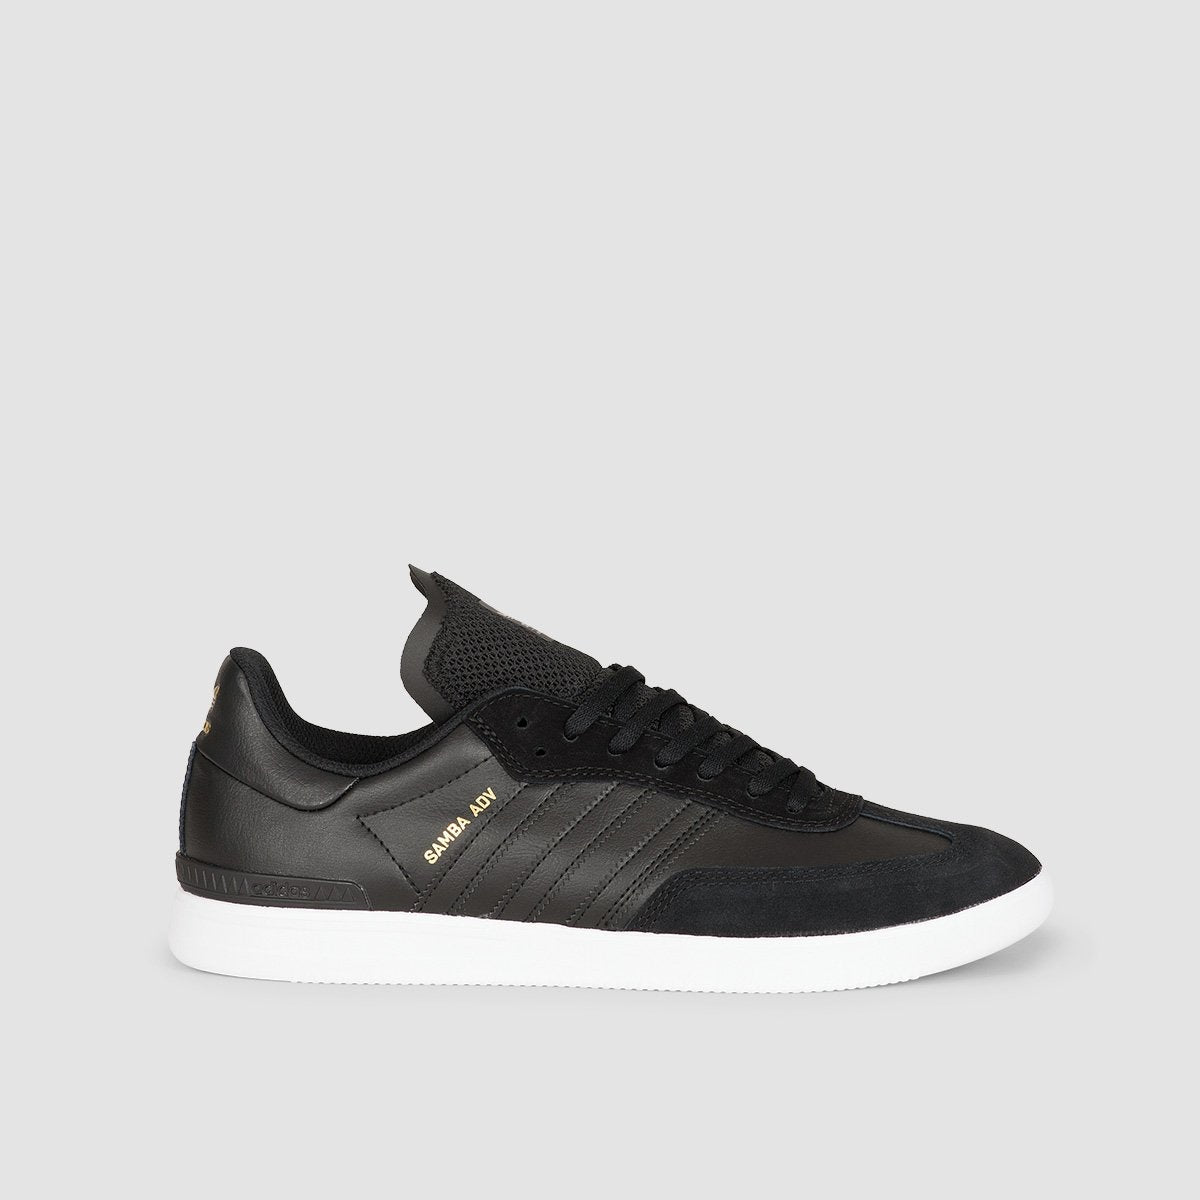 adidas Samba Adv Core Black/Footwear White/Gold Metalic - Footwear